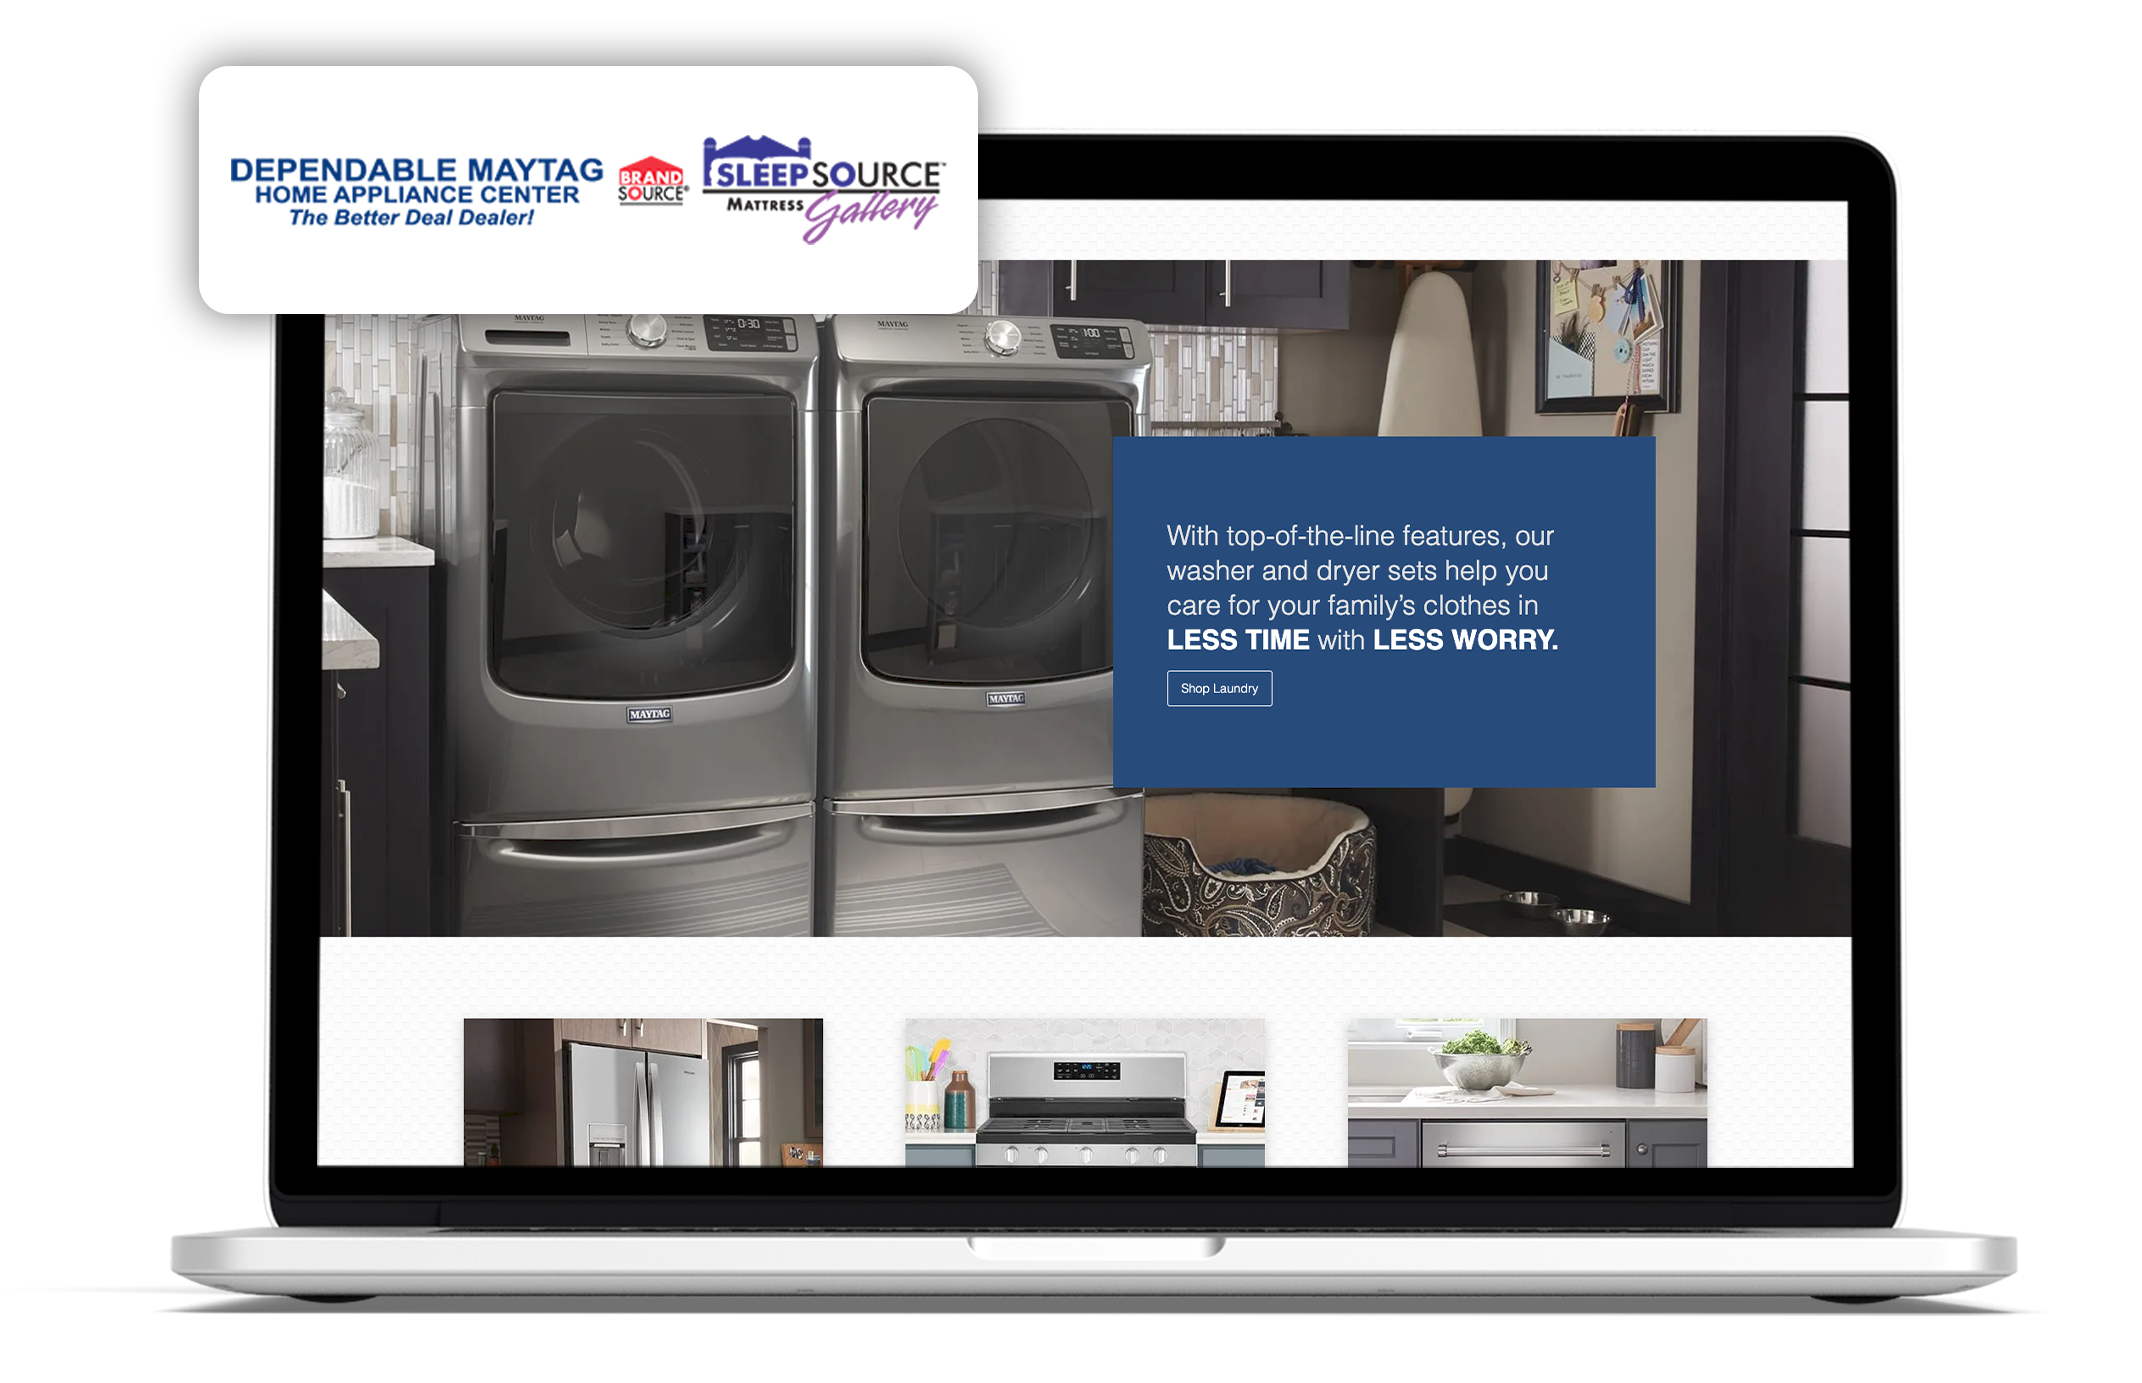 dependable-maytag copy